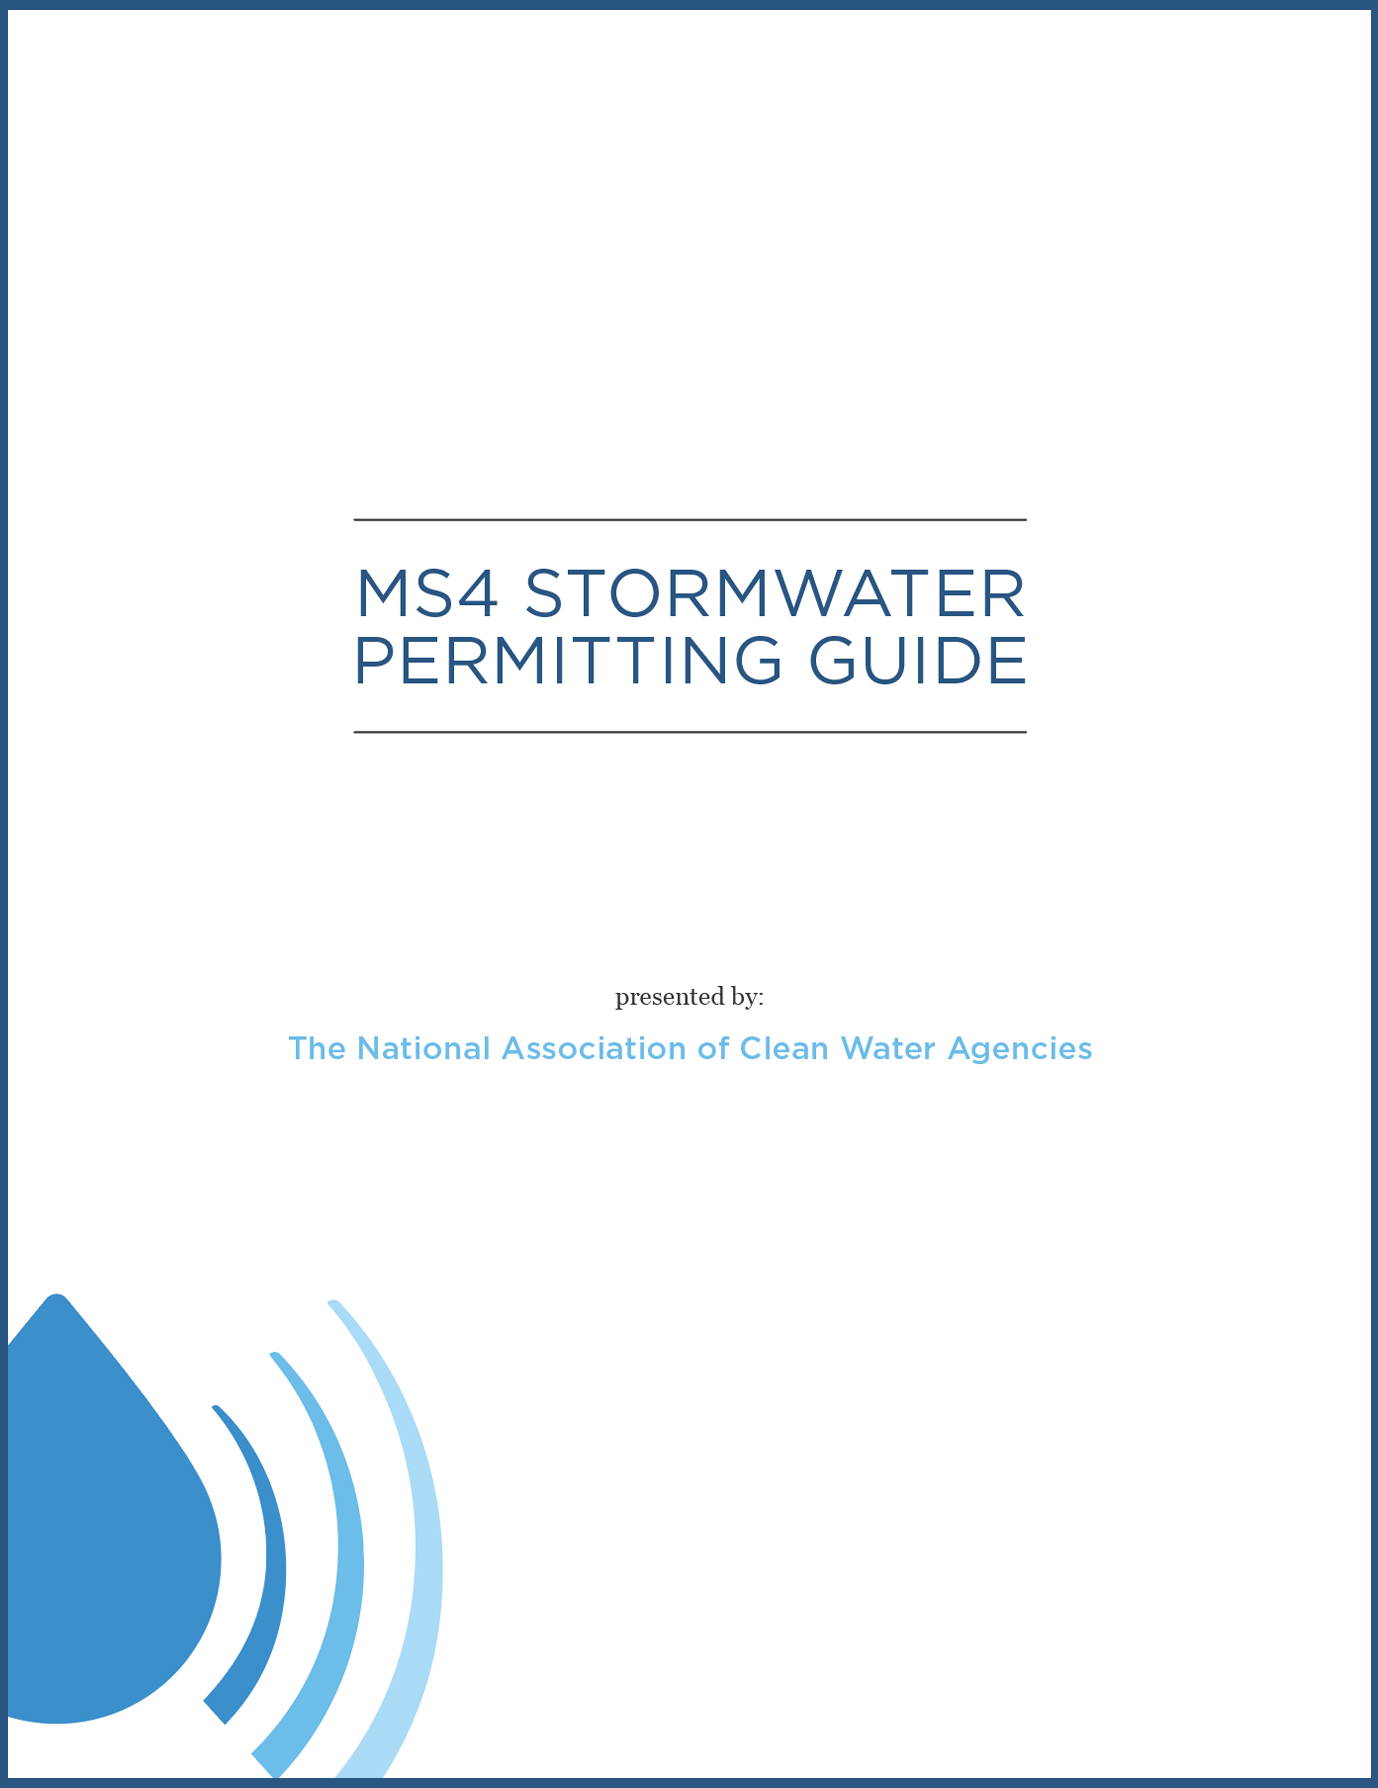 stormwater-guide